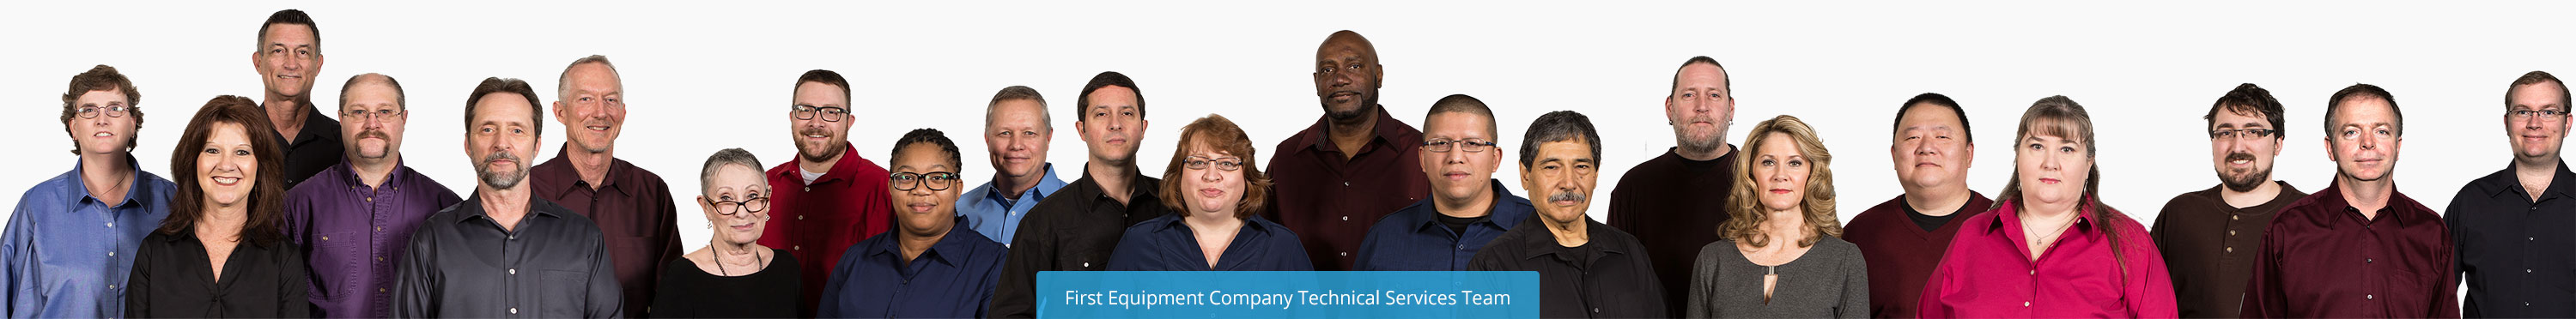 First Equipment Company Technical Services Team